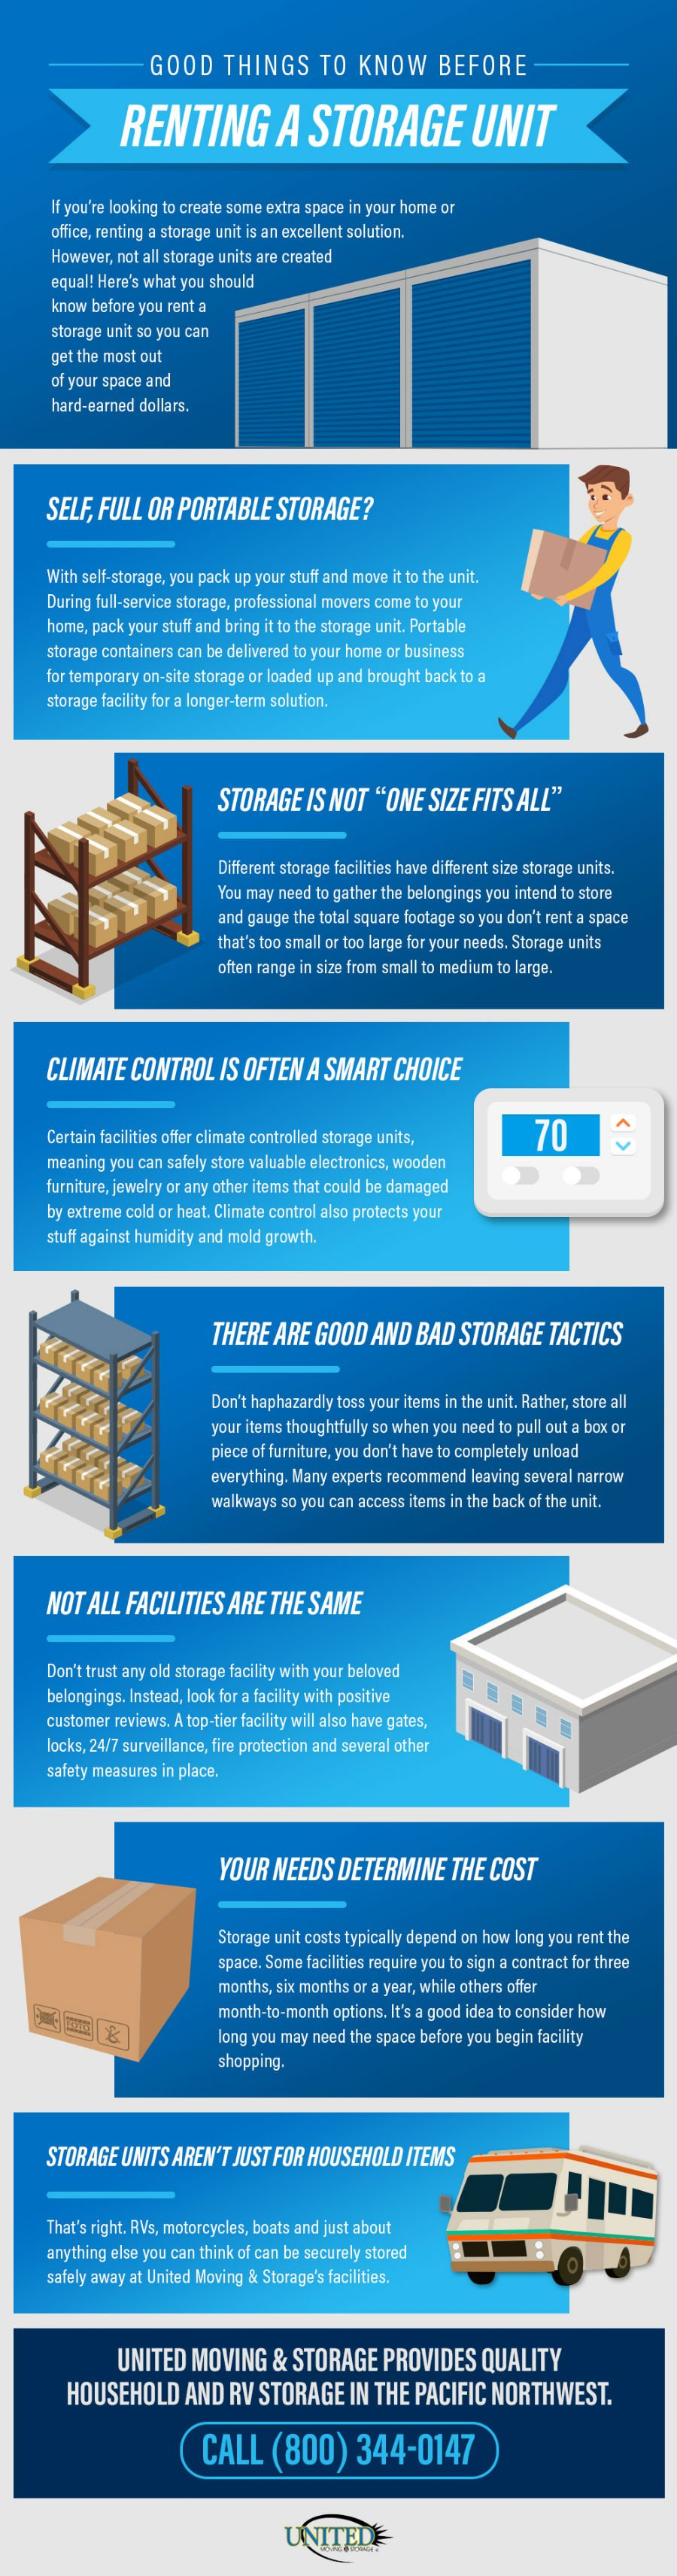 sc 1 st  United Moving u0026 Storage & Good Things to Know Before Renting a Storage Unit